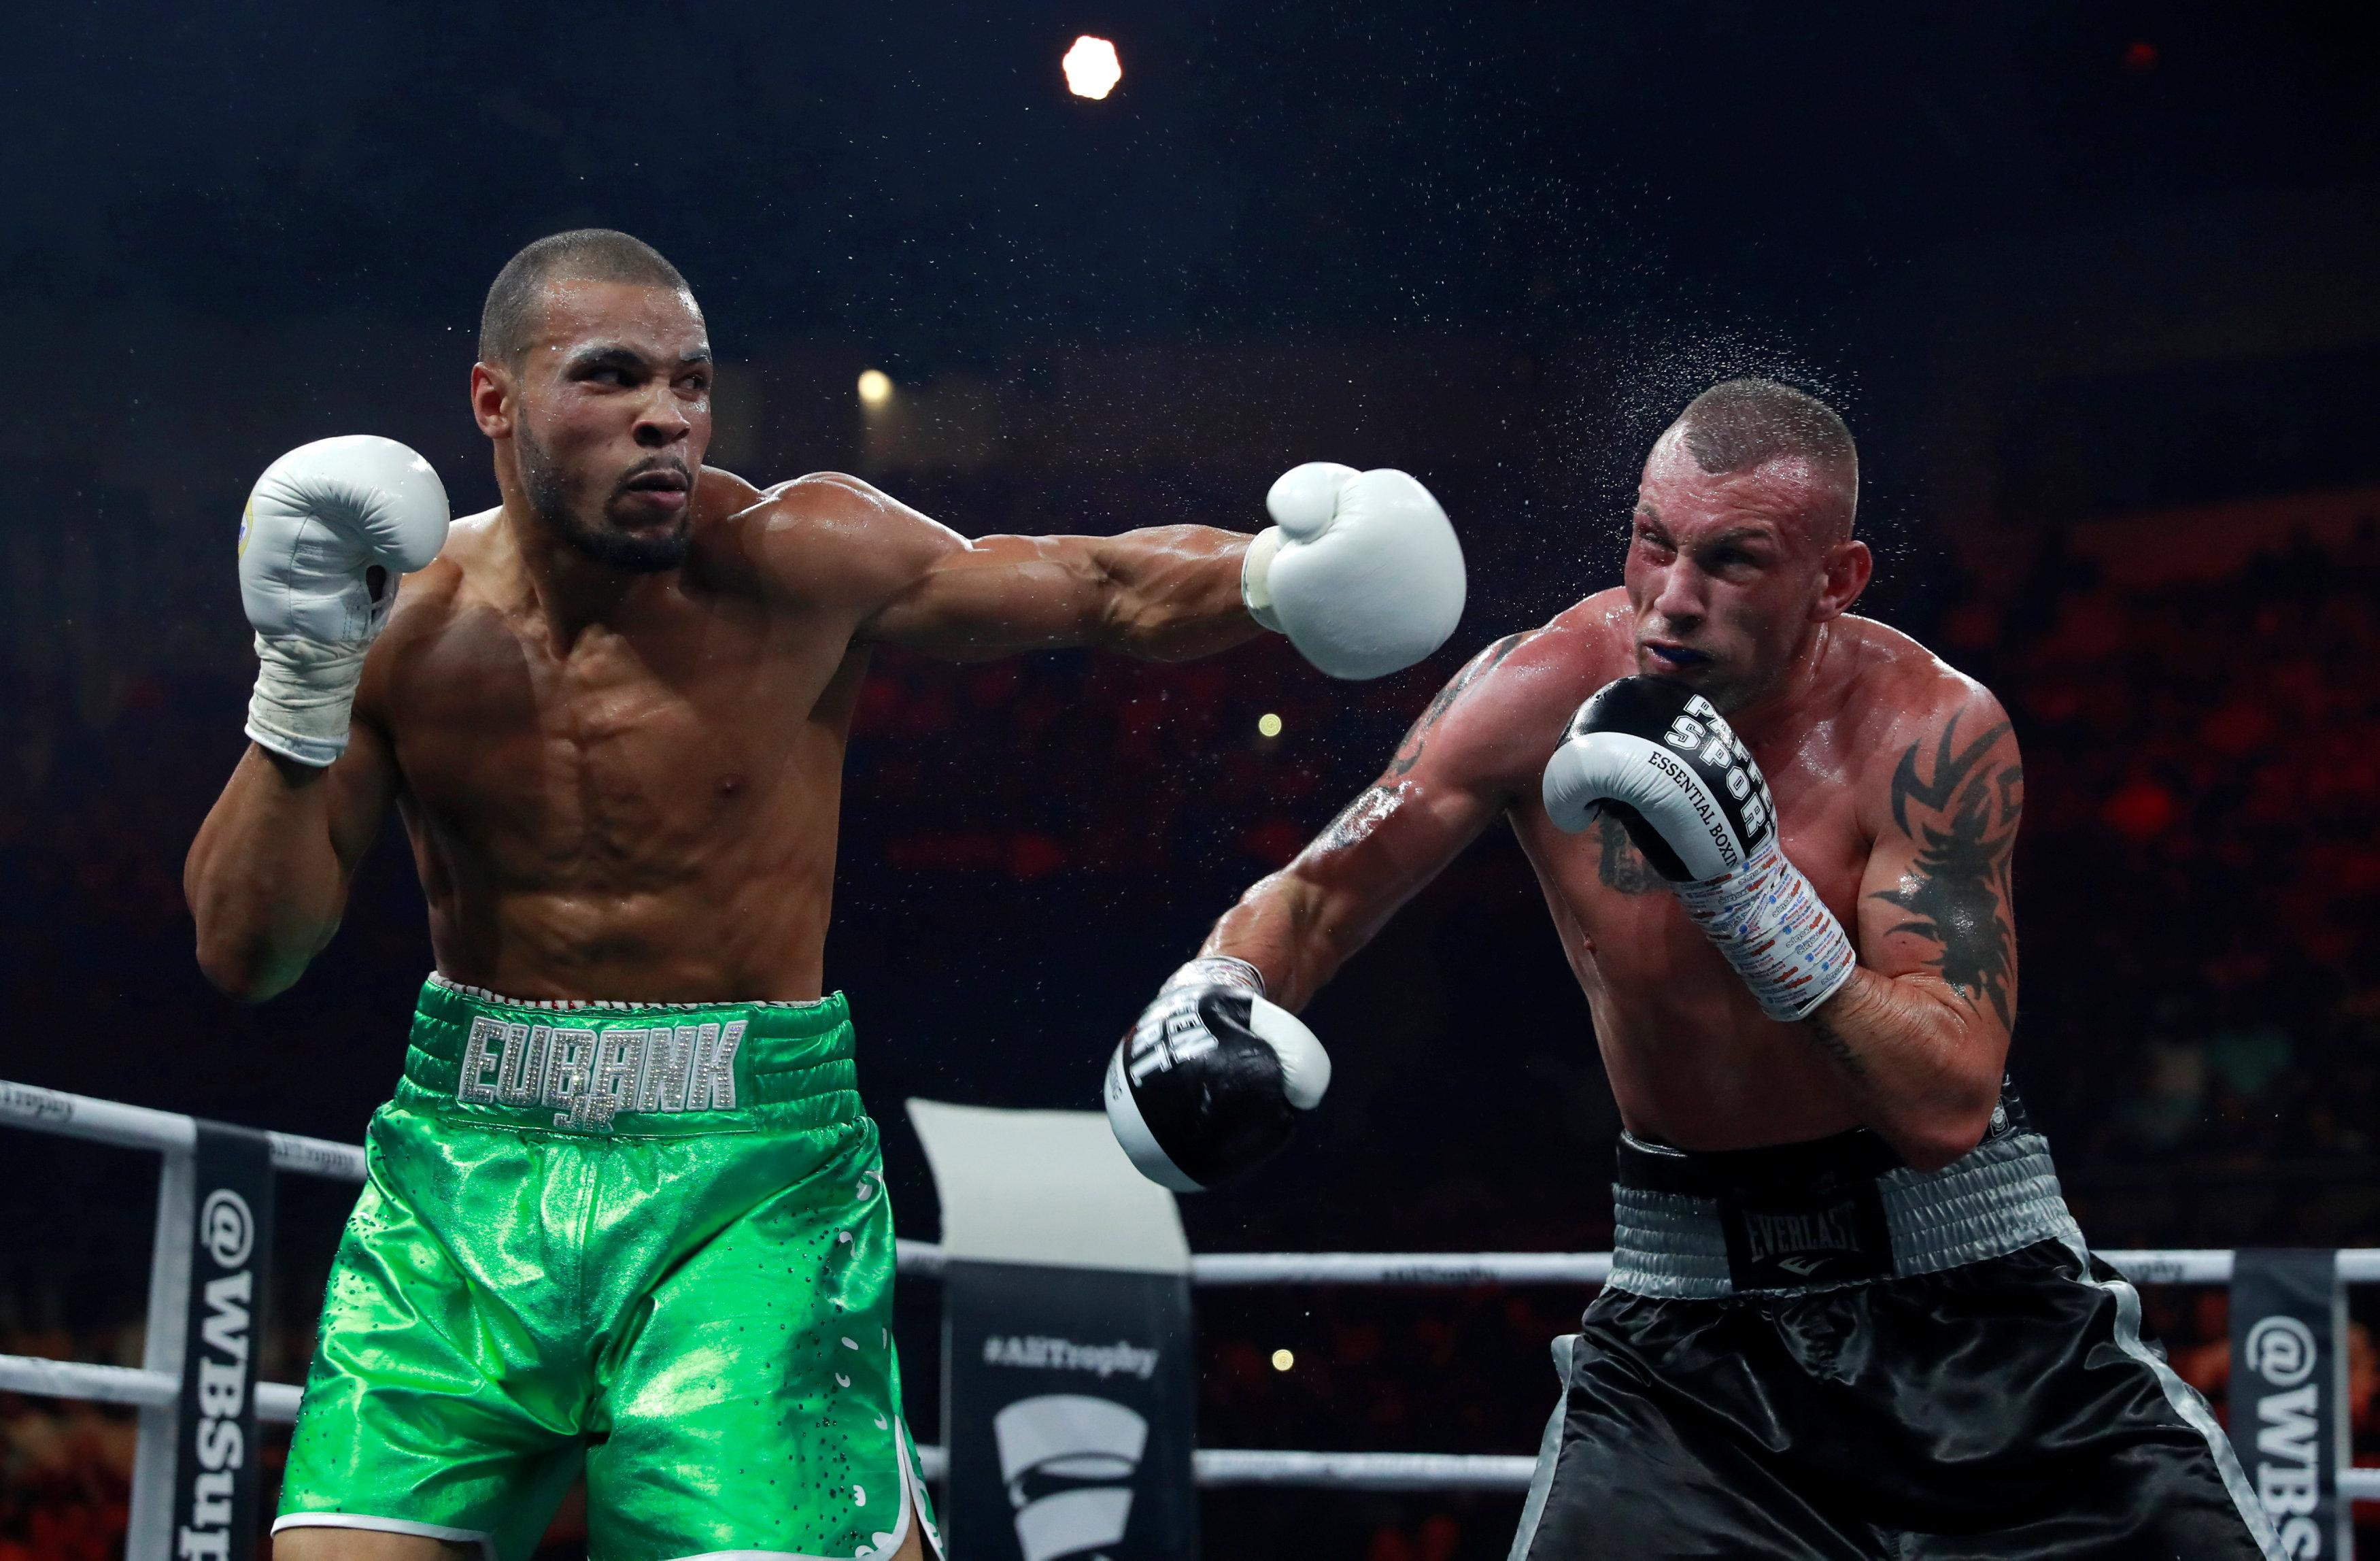 Eubank Jr dominated the super-middleweight match-up between the two